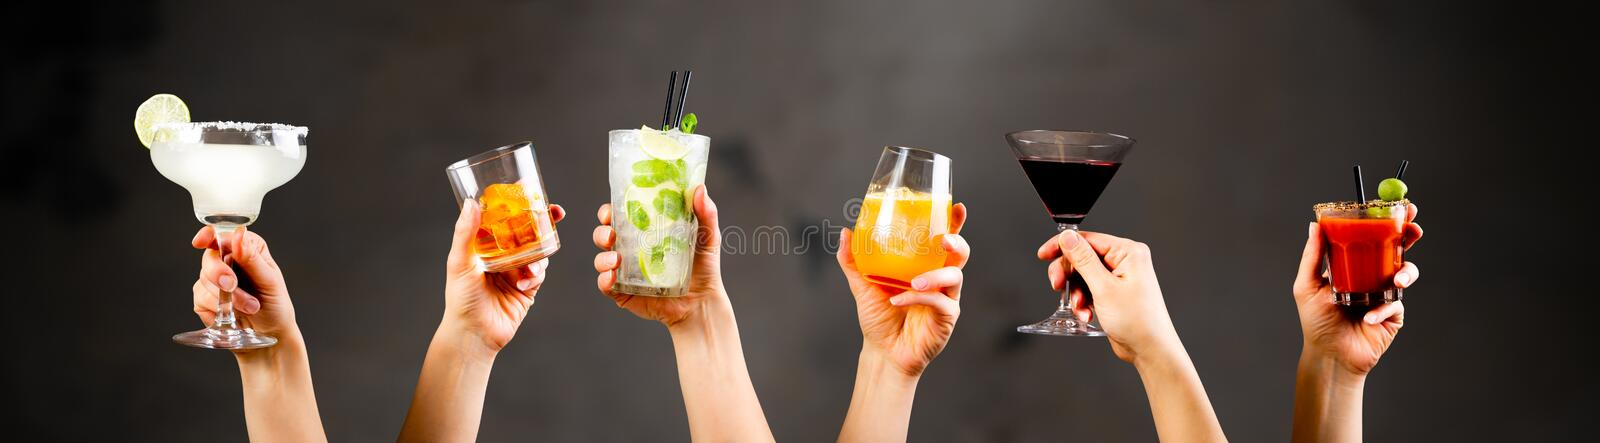 Hands holding classic cocktails on rustic background stock images